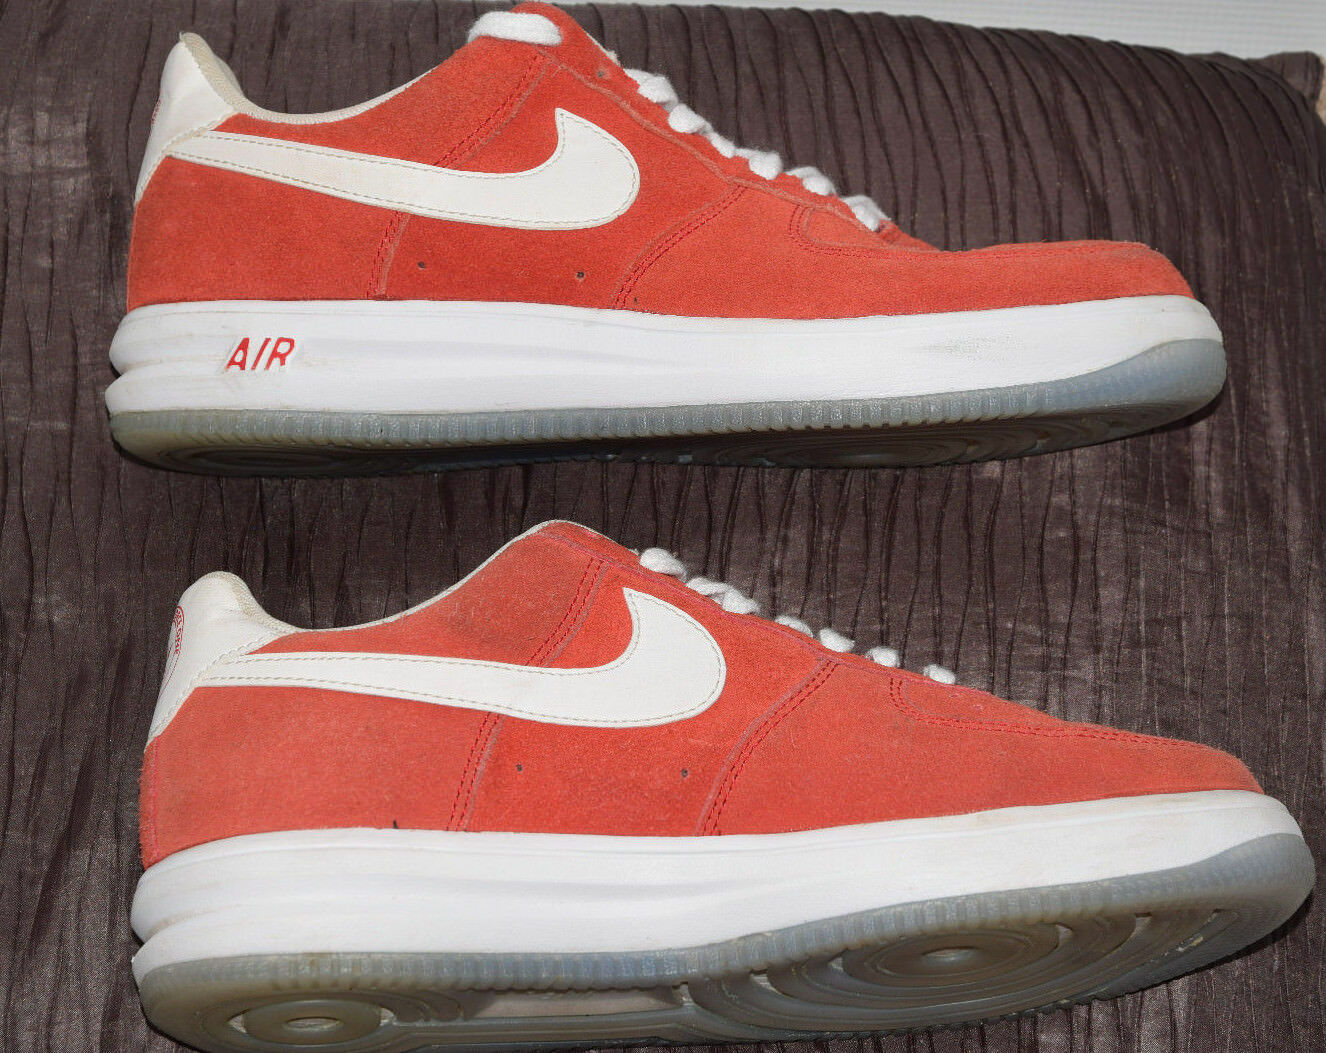 Nike lunar force 1 sneakers red us 9 eu 42.5 27cm sedue leather